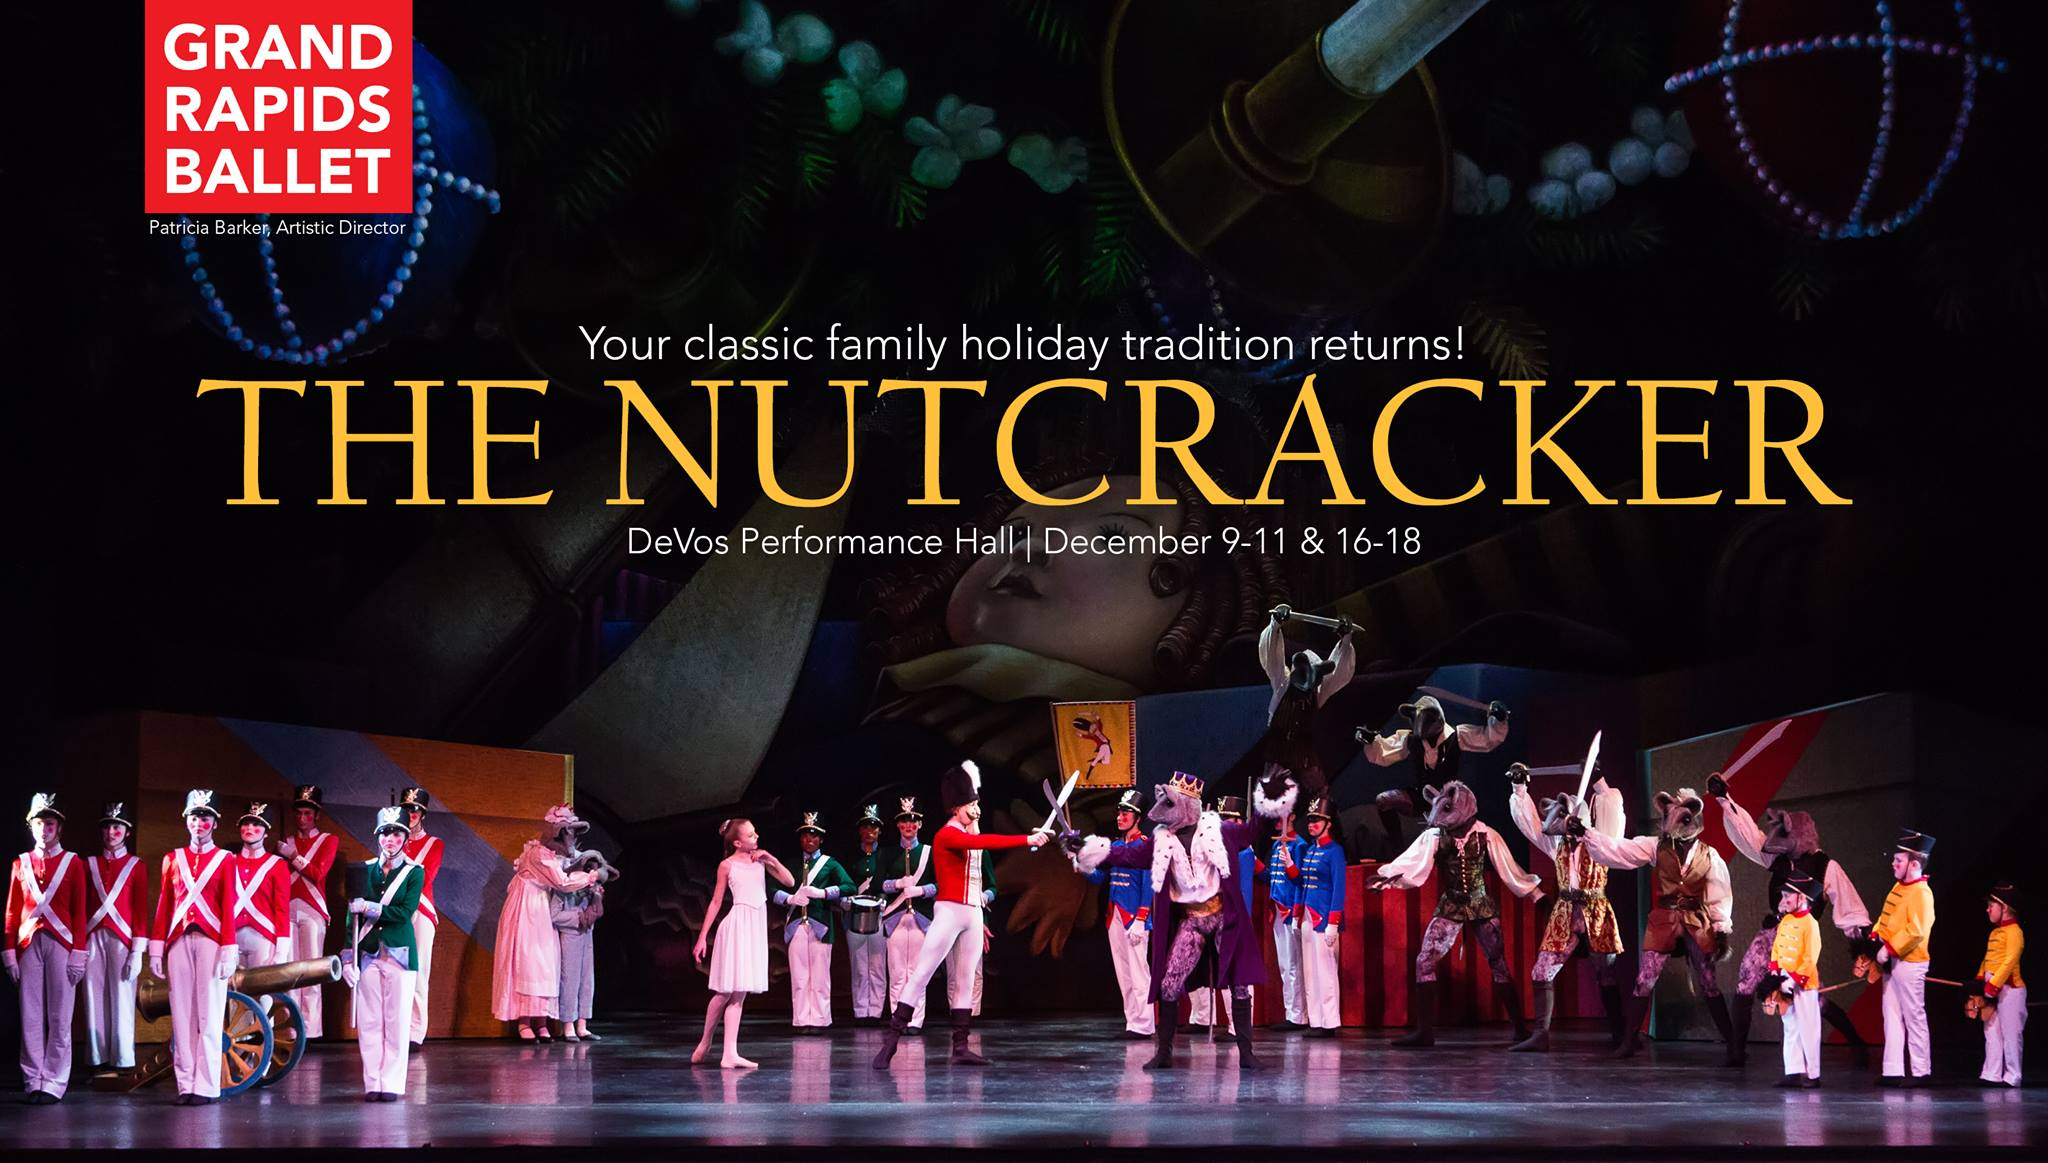 Grand Rapids Ballet Presents The Nutcracker West